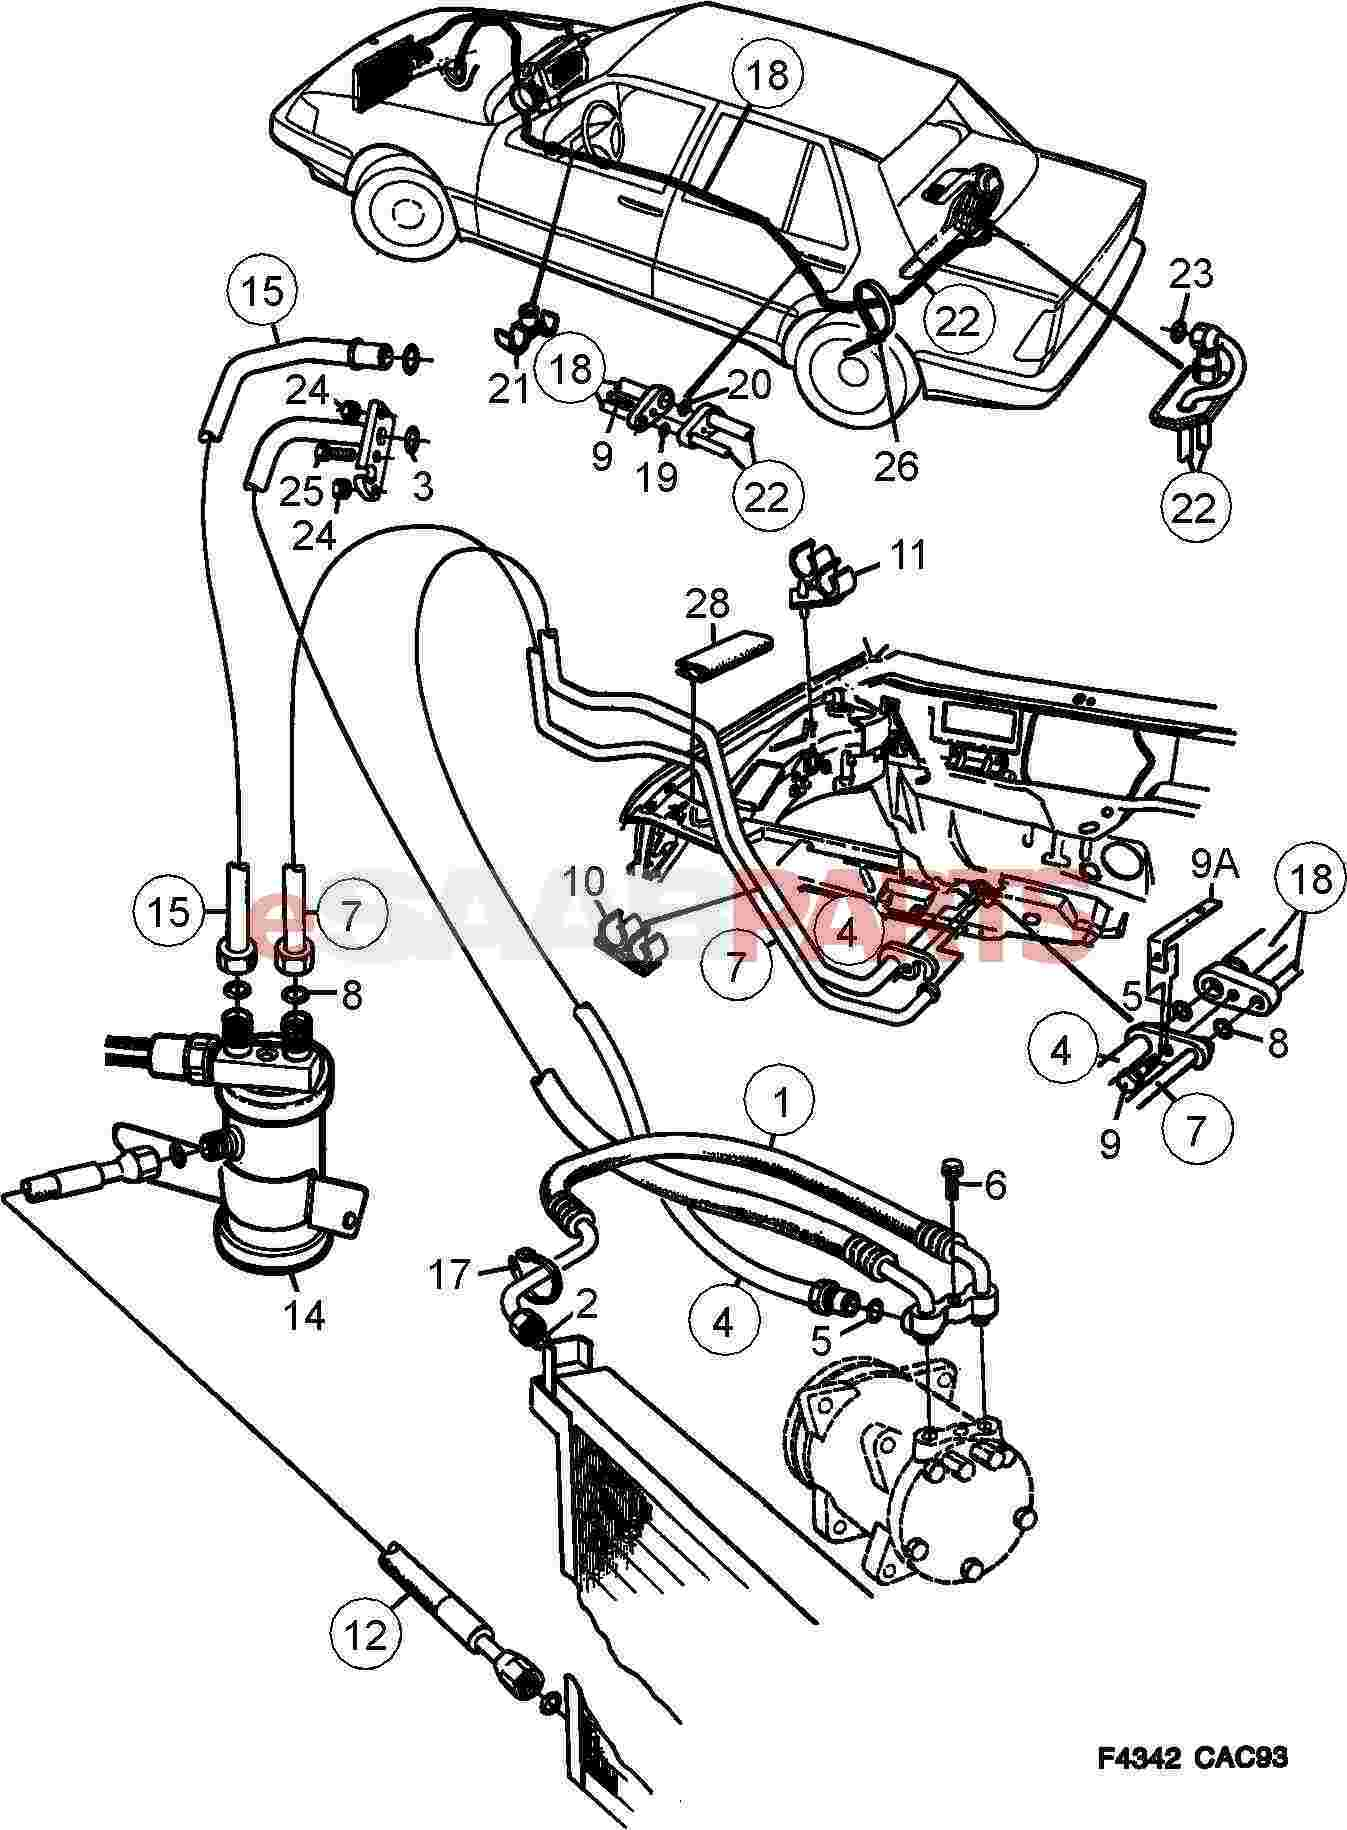 [DIAGRAM] Wiring Diagram For Saab 9000 FULL Version HD